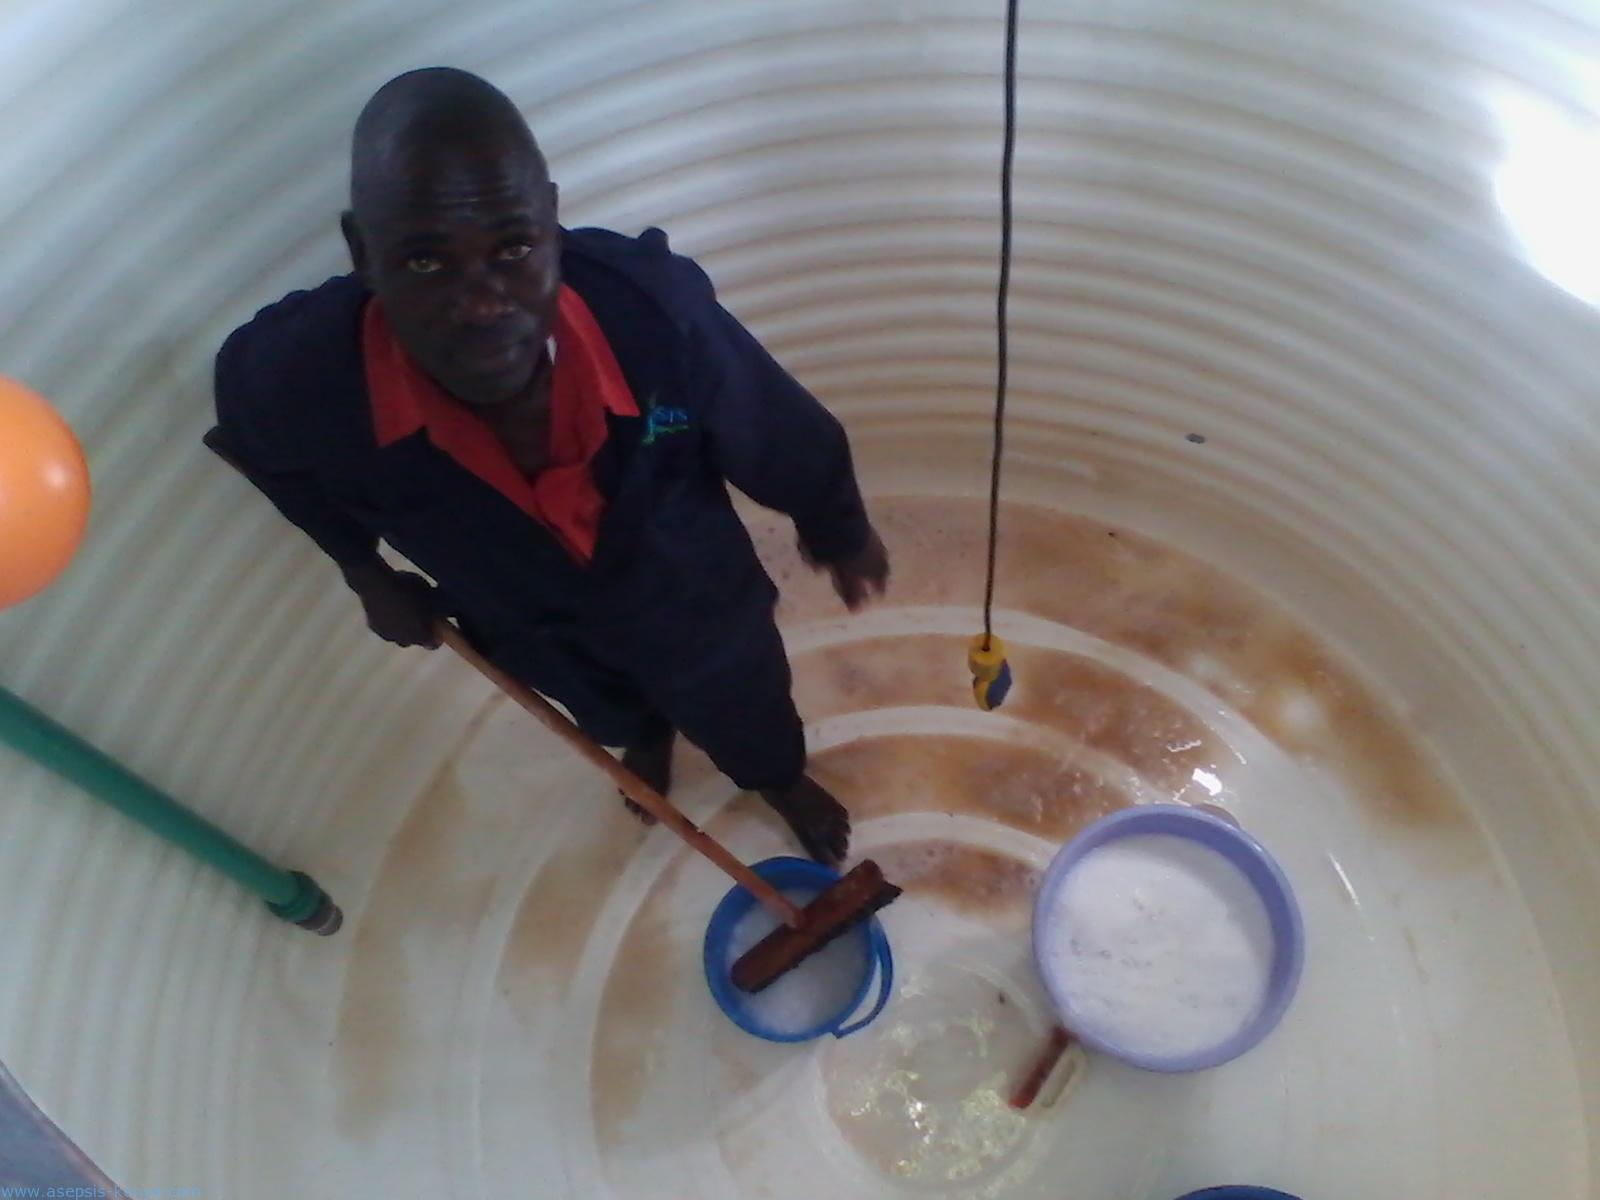 Asepsis-Kenya-limited-tank-cleaning-services-3